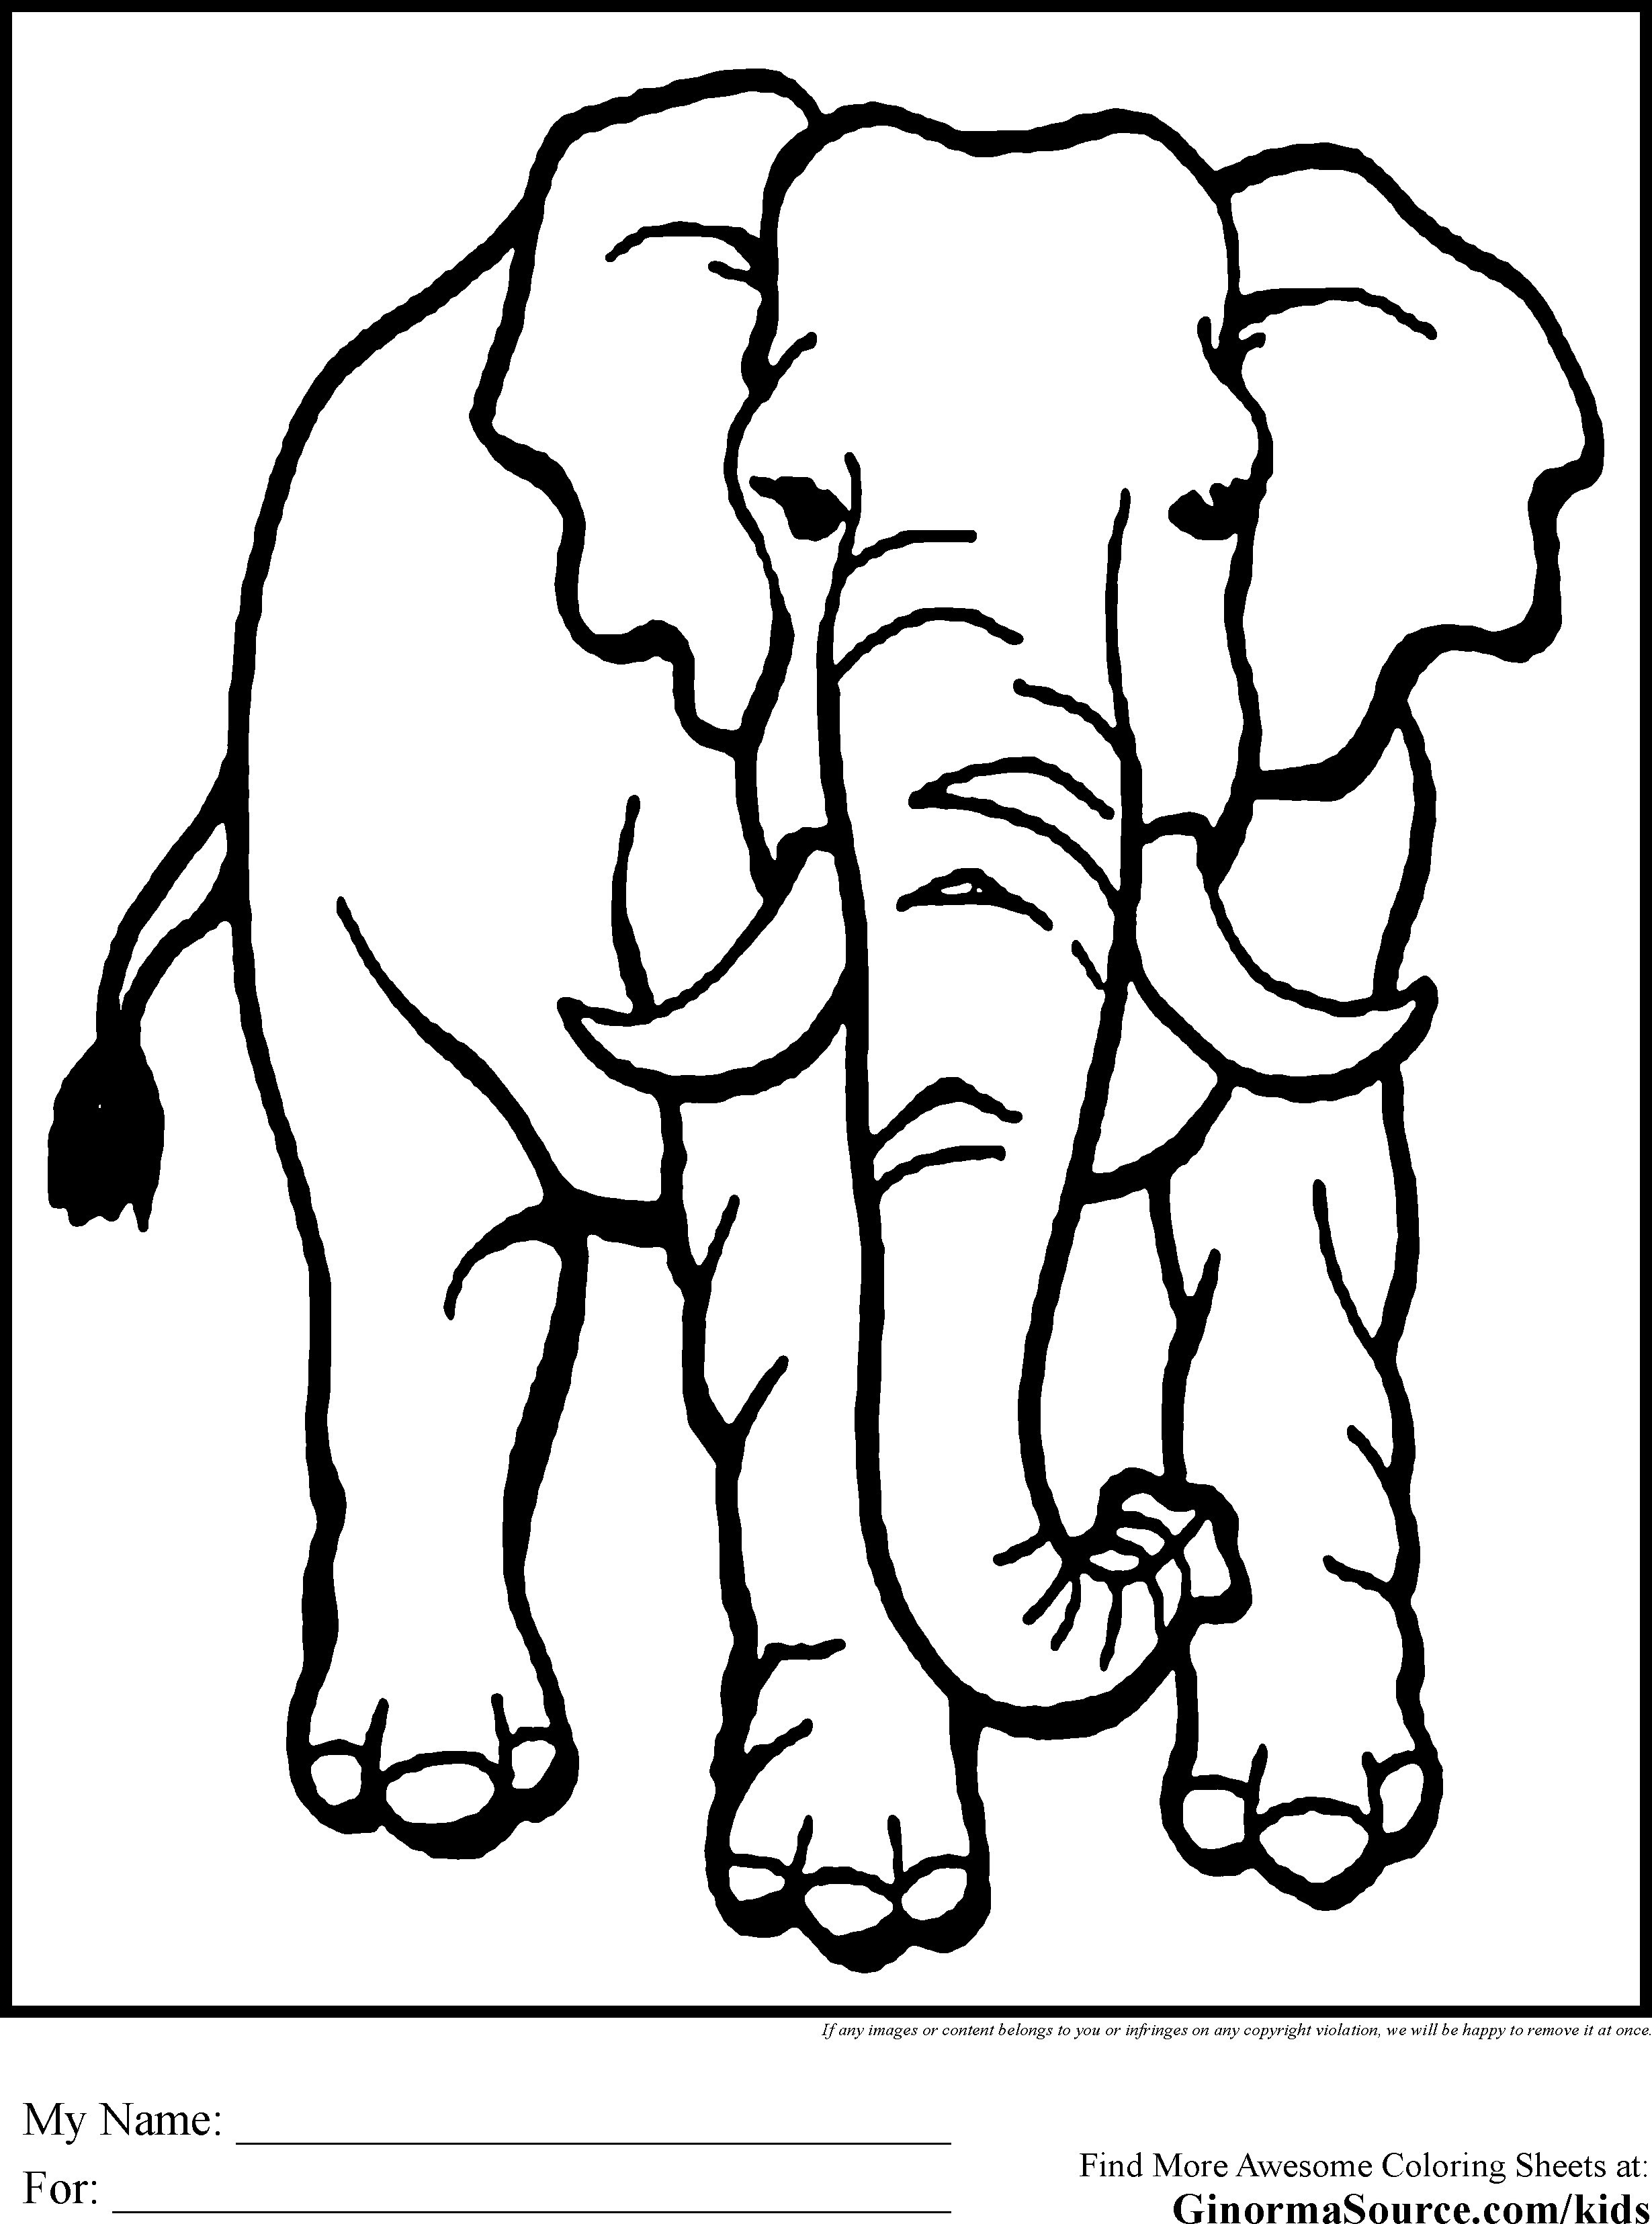 endangered-animals-coloring-pages-of-endangered-animals-coloring-pages Endangered Animals Coloring Pages Animal